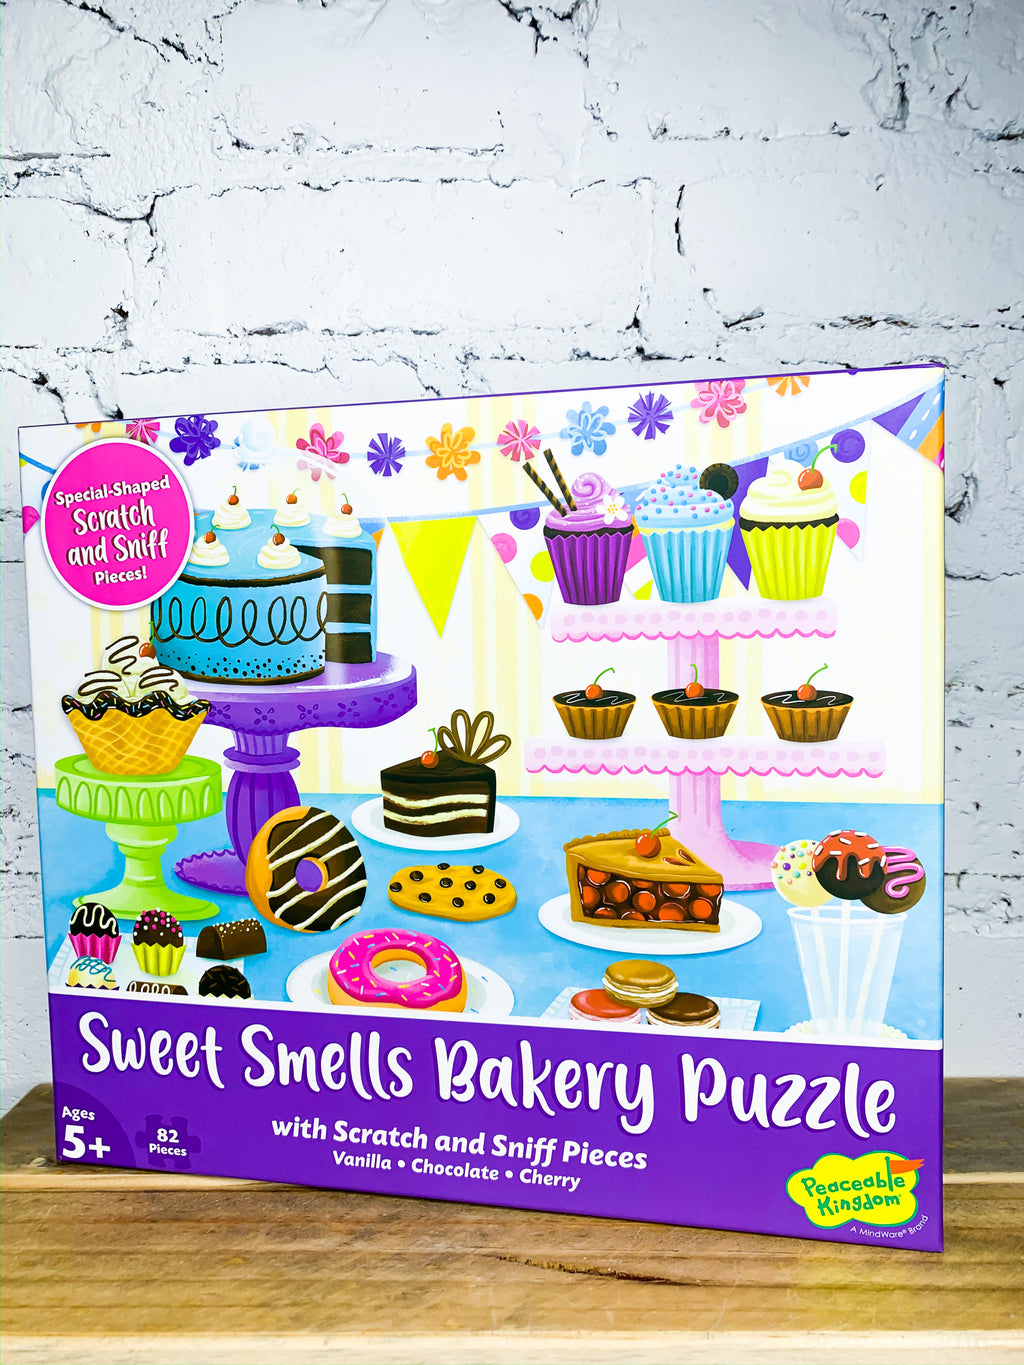 Sweet Smells Bakery Puzzle